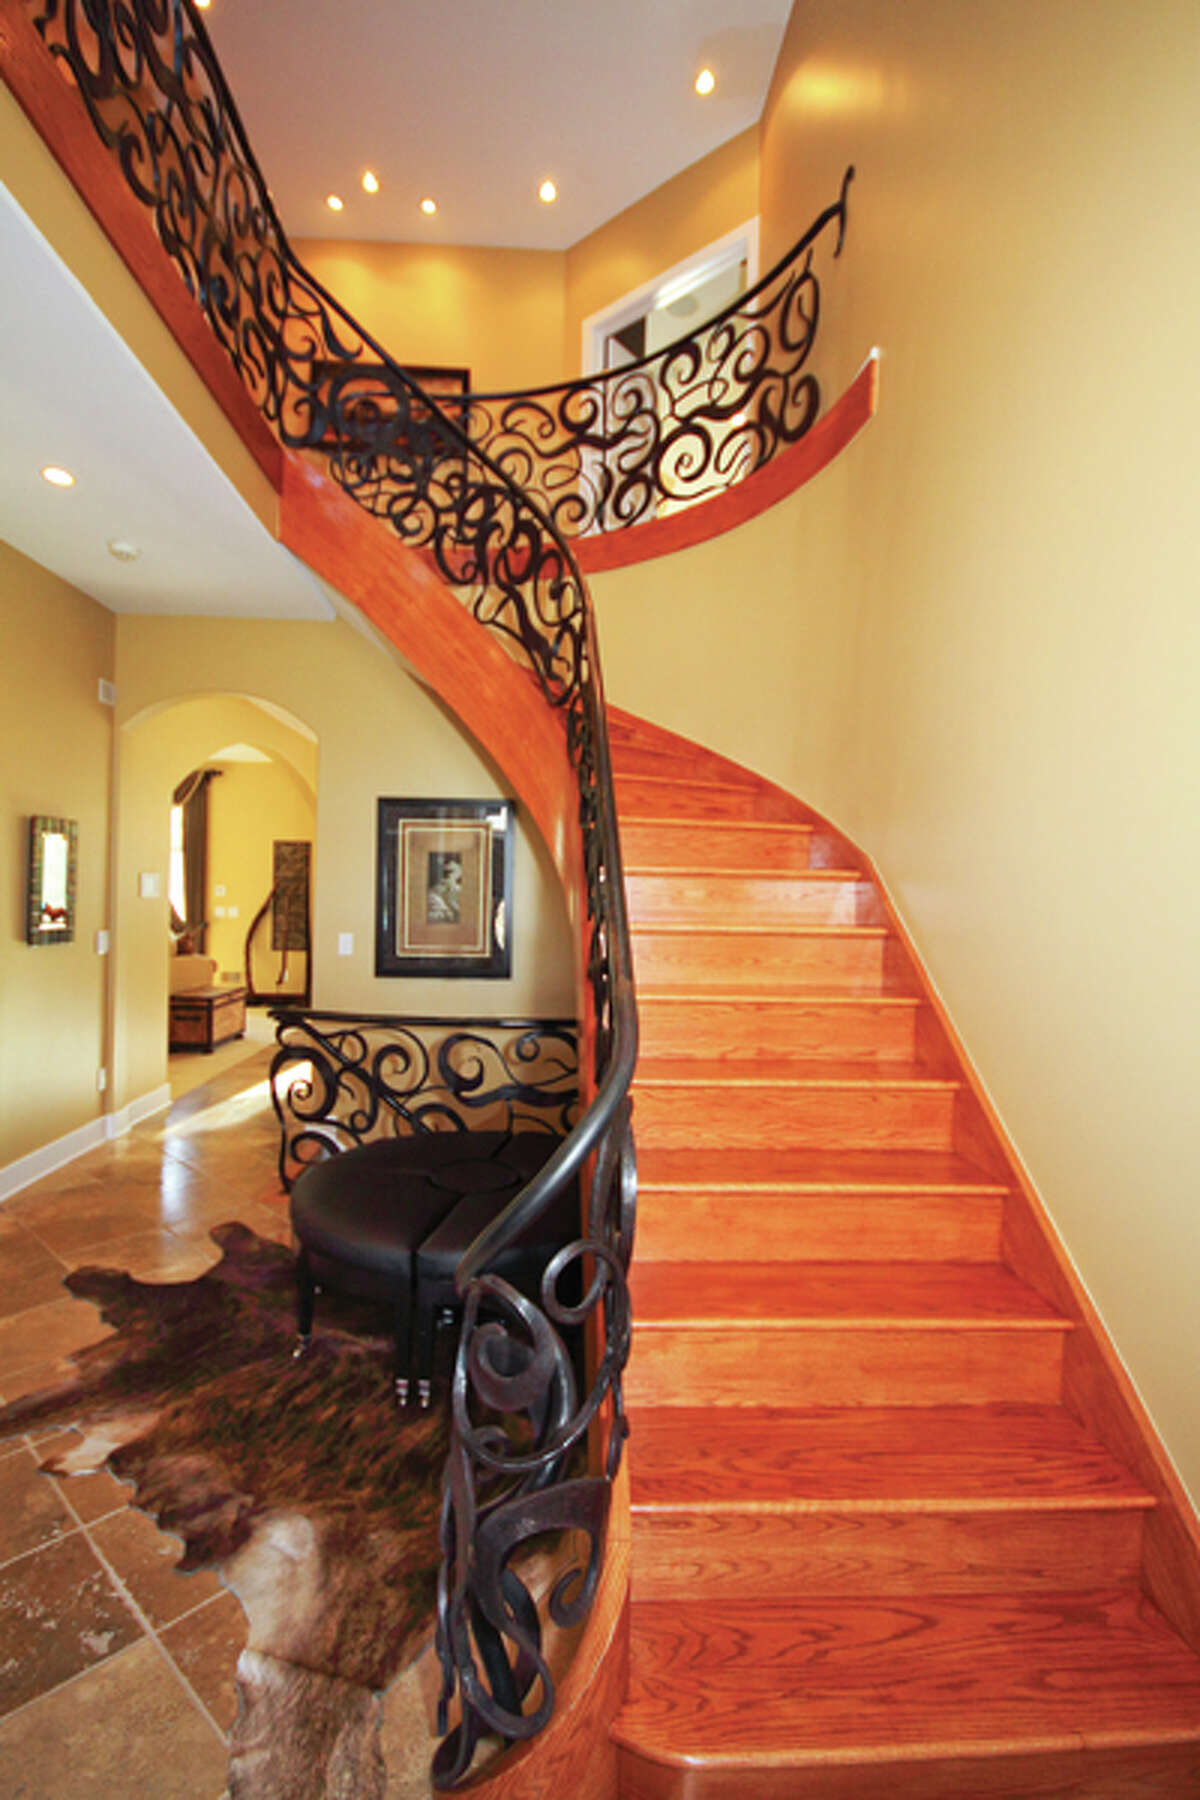 The curved metal staircase railings seen here were created by George Kaelber of Kaelber Custom Forging in Hyde Park. (Nancy Bruno/Life@Home) Click here to read the story.